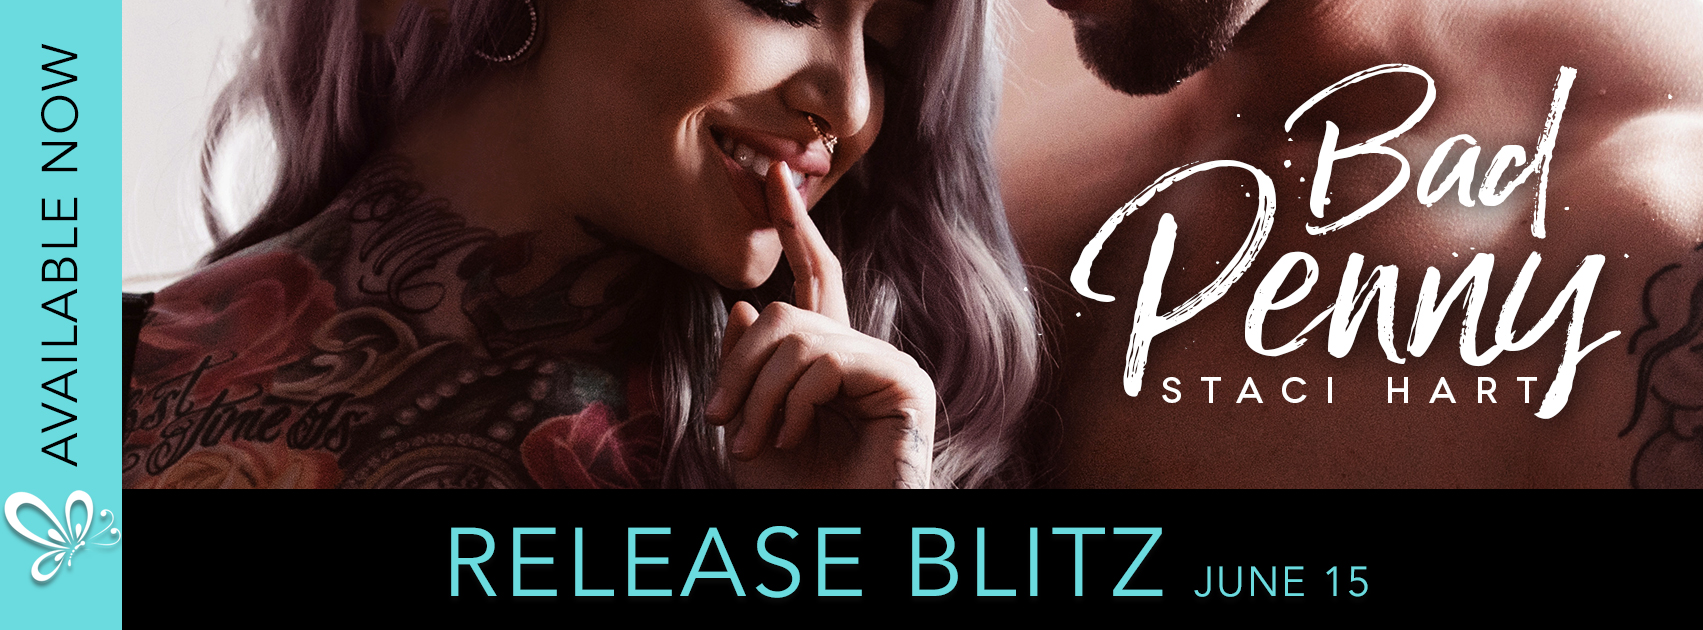 [New Release] BAD PENNY by Staci Hart @imaquirkybird @jennw23 #Excerpt #UBReview